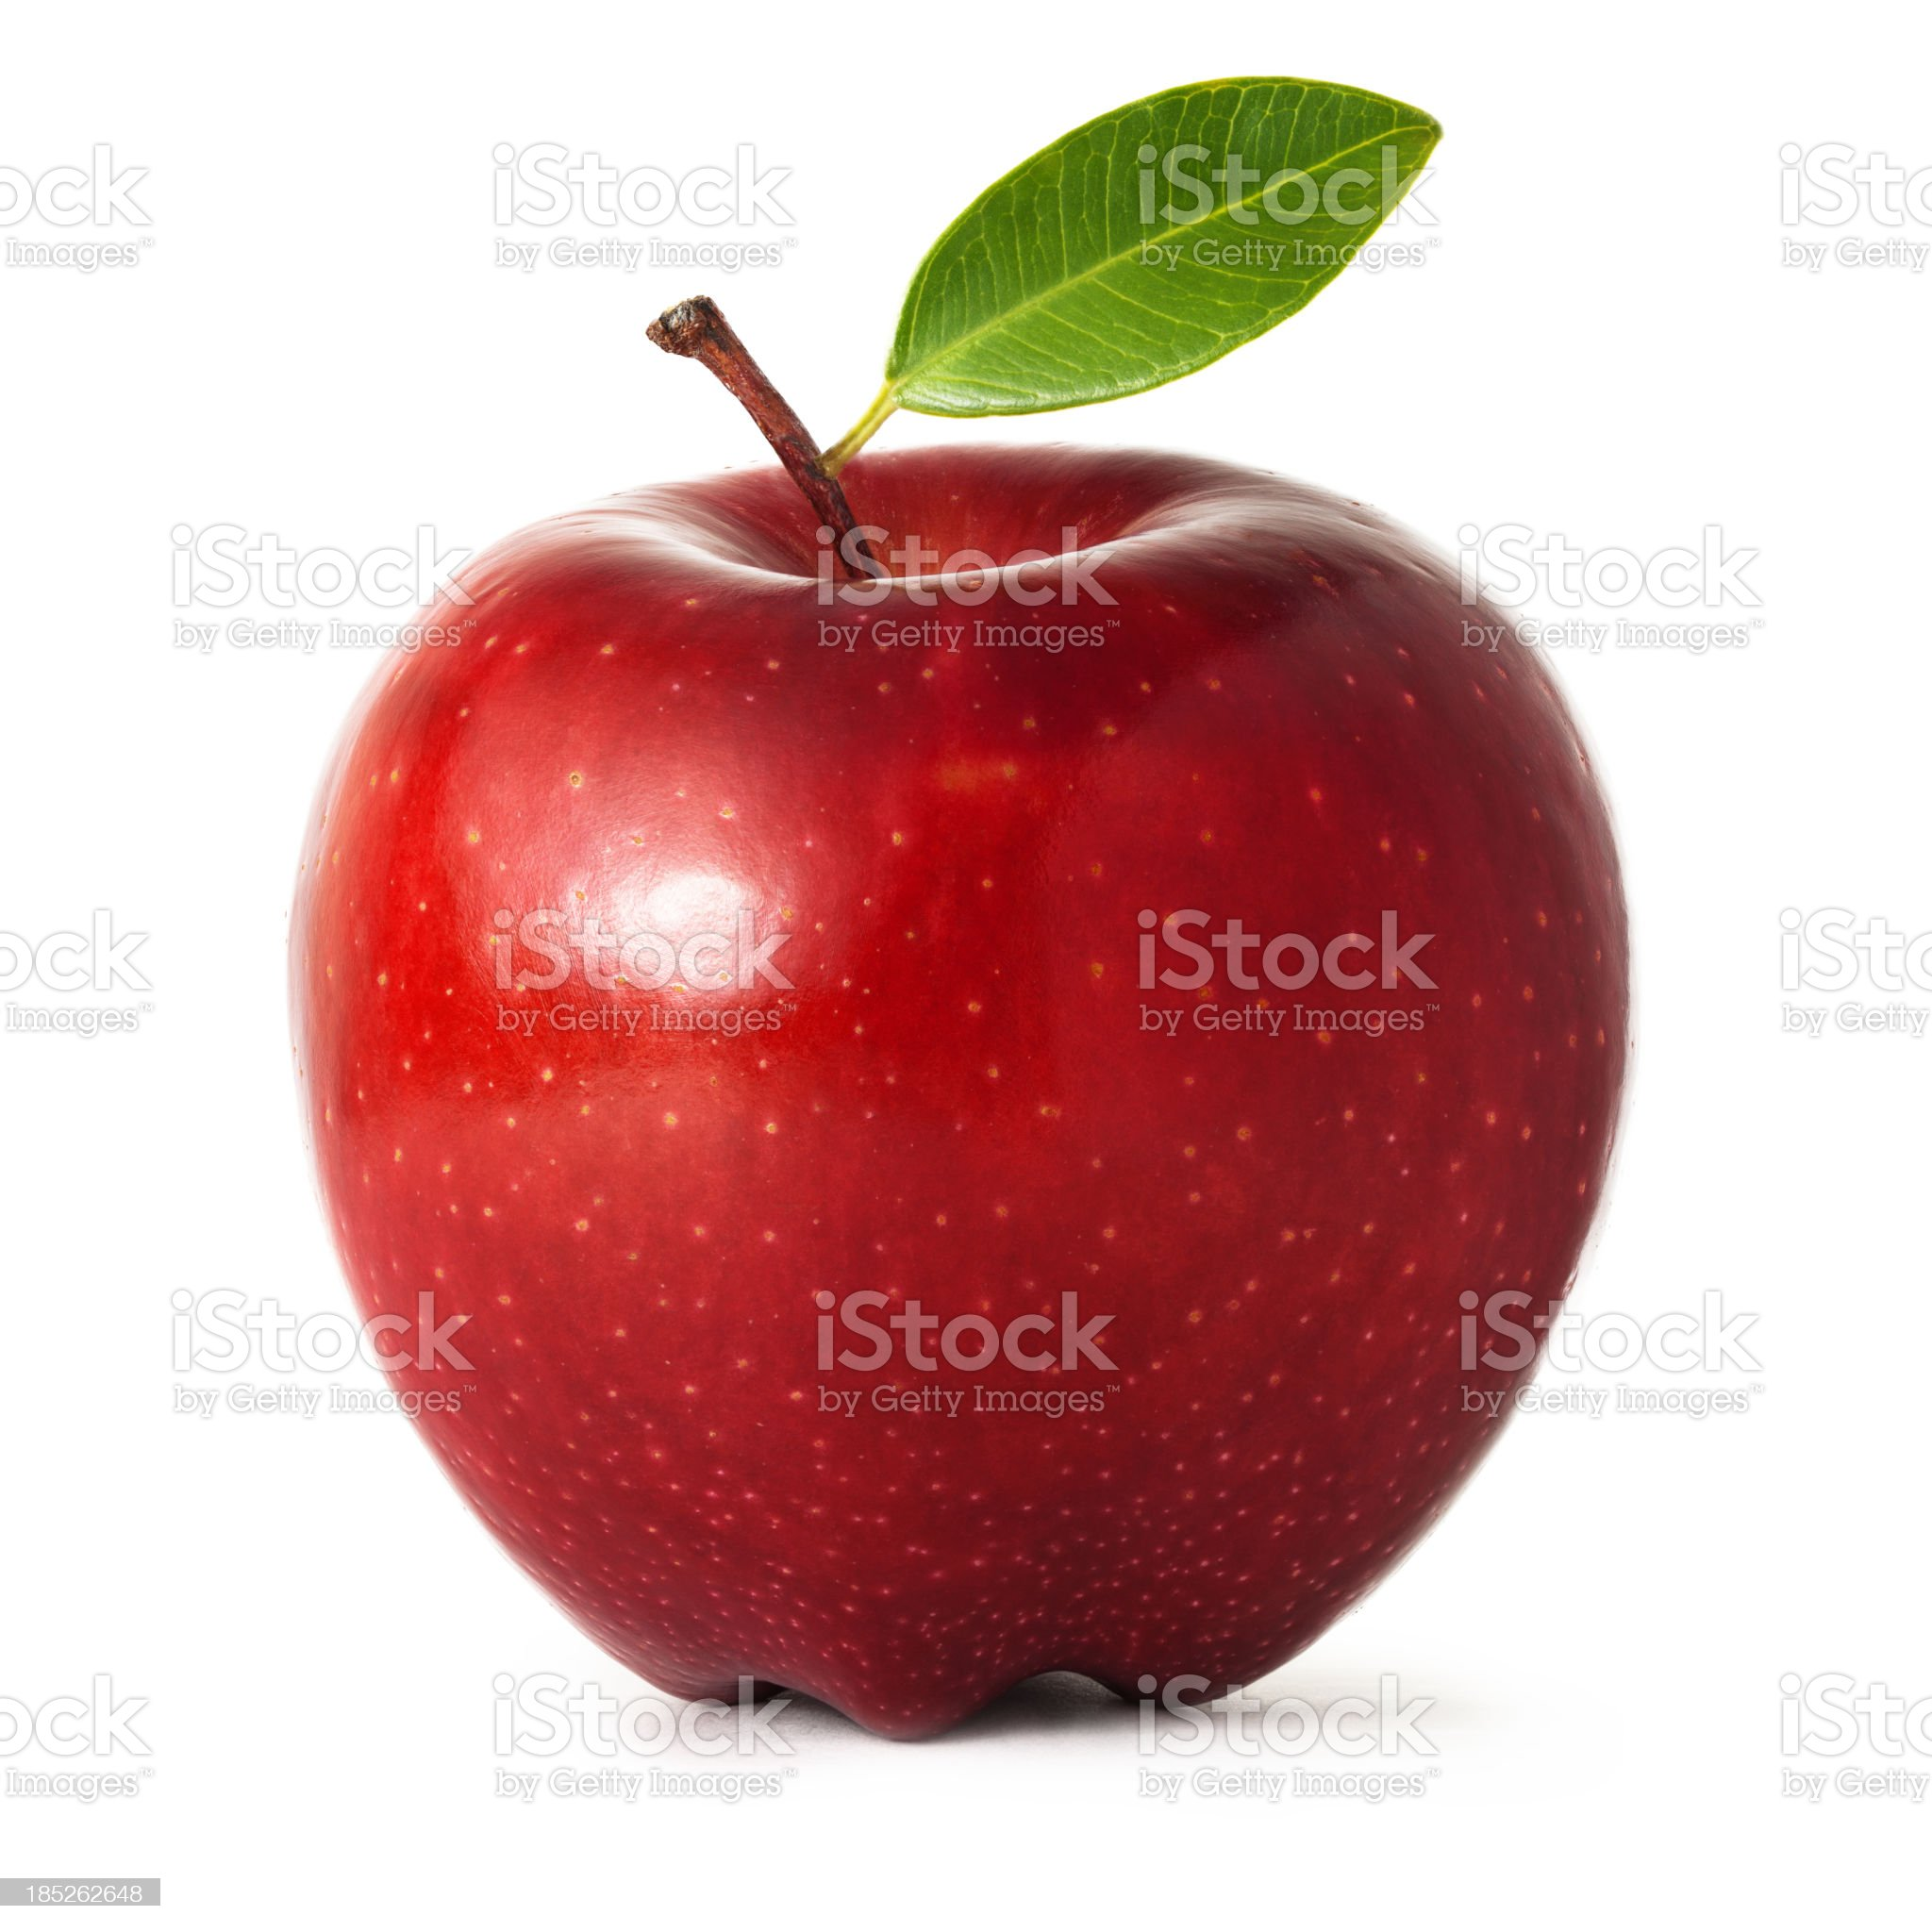 Red apple with leaf isolated on white background royalty-free stock photo